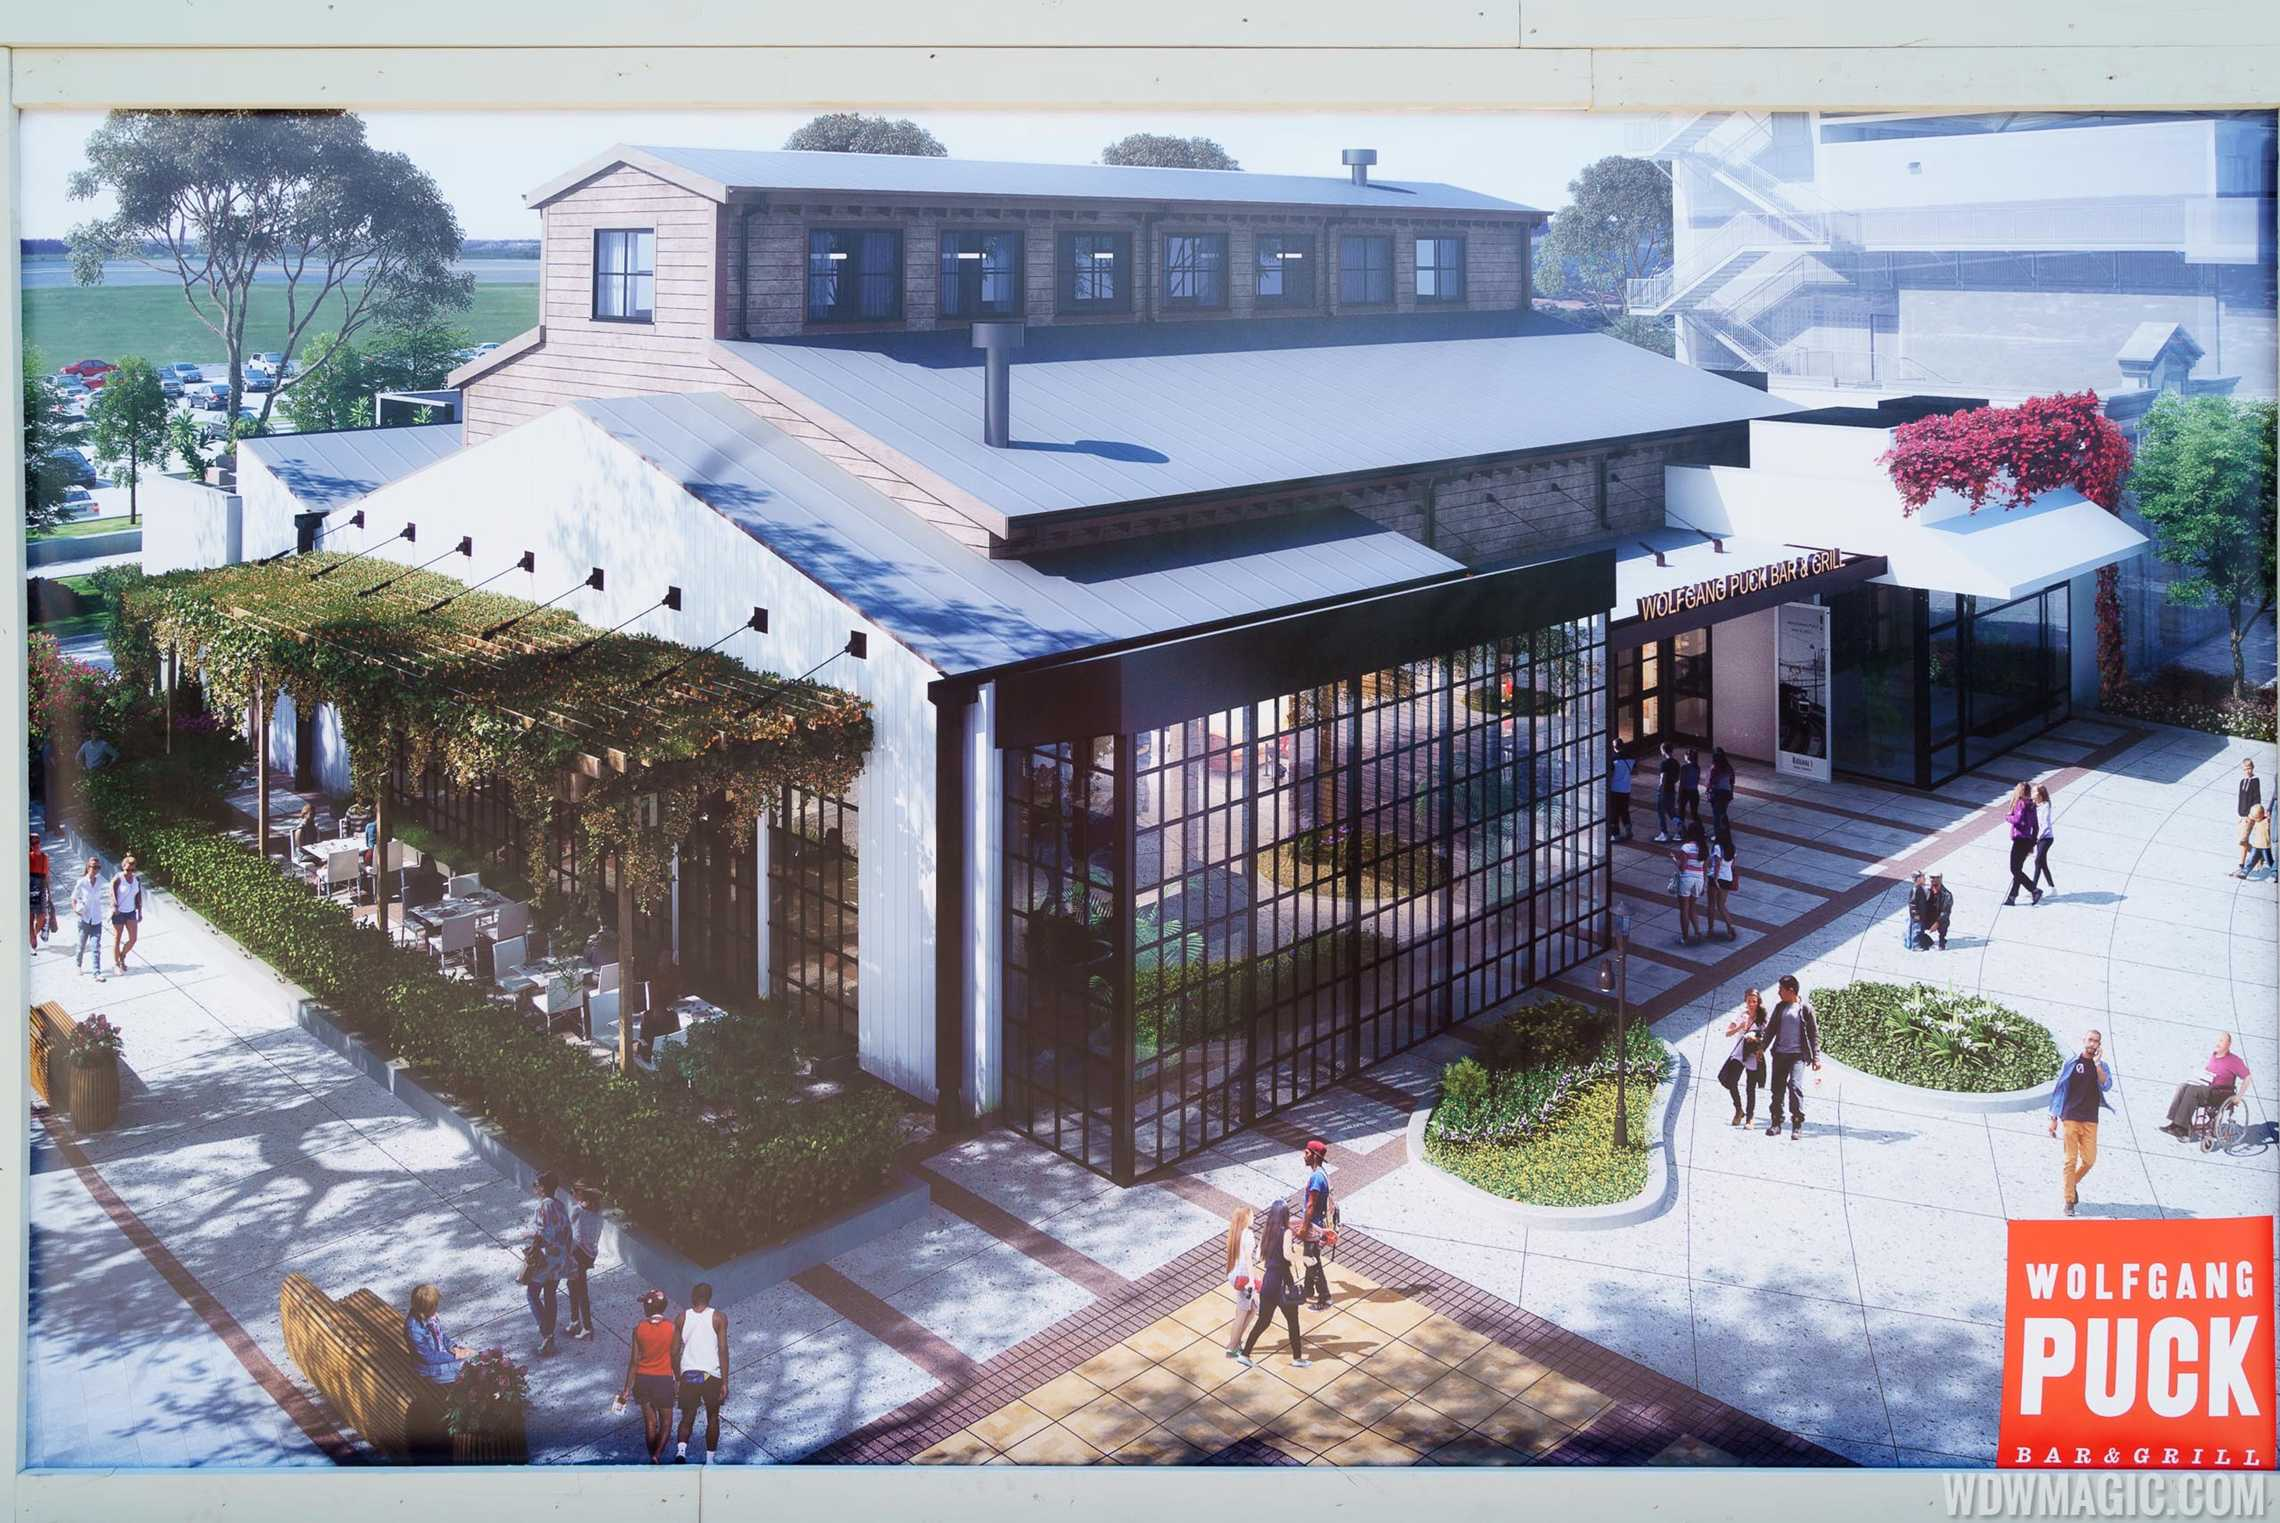 Wolfgang Puck Bar and Grill concept art - Exterior